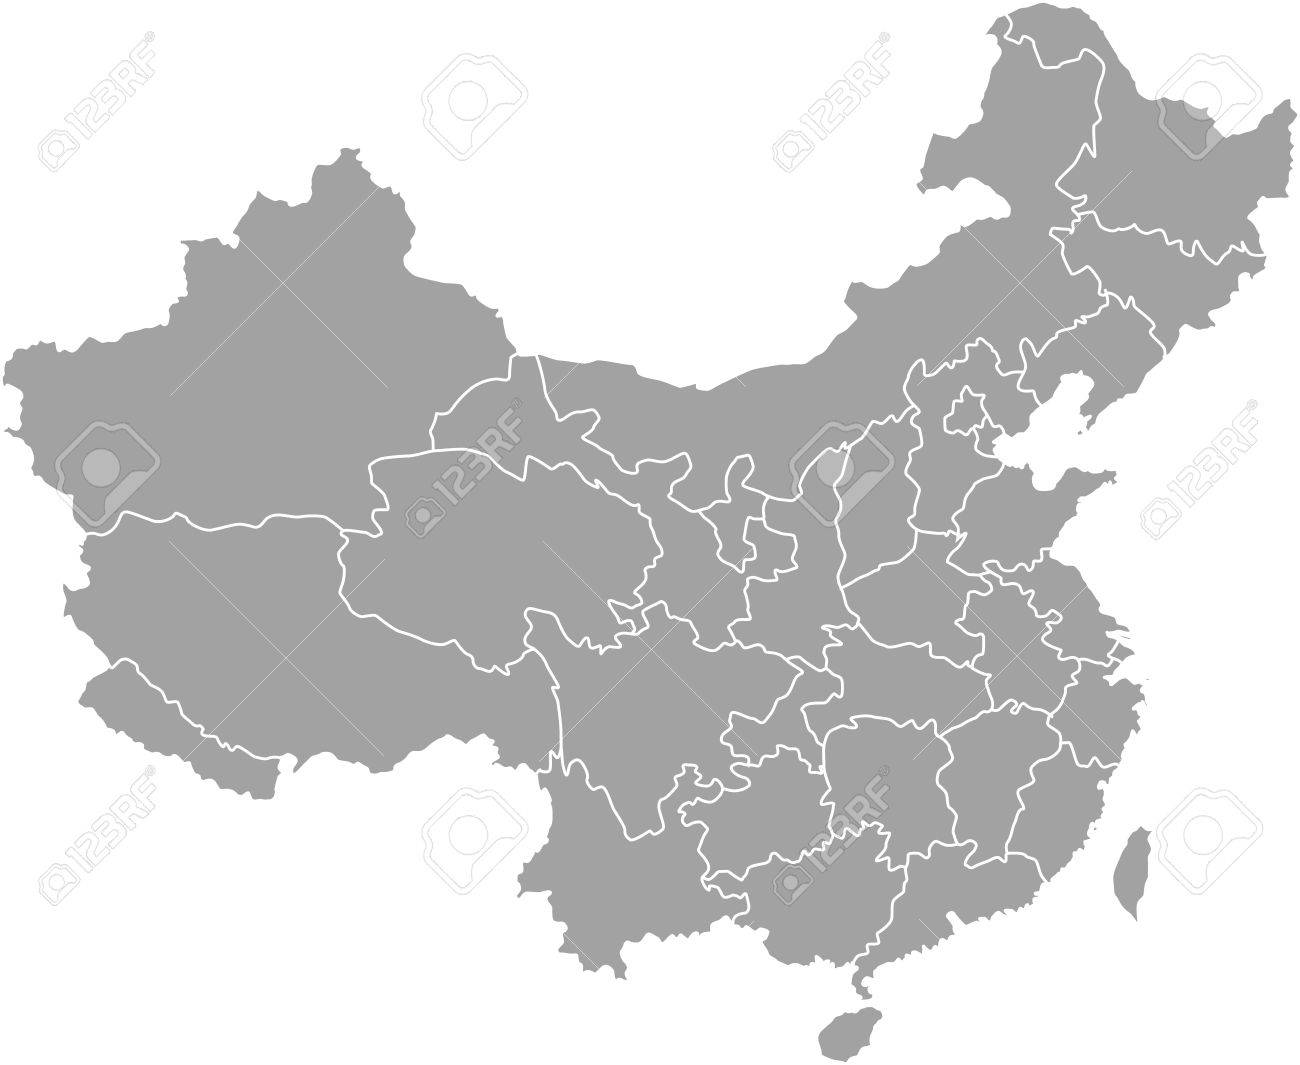 China Map Outline With Borders Of Provinces Or States Royalty Free